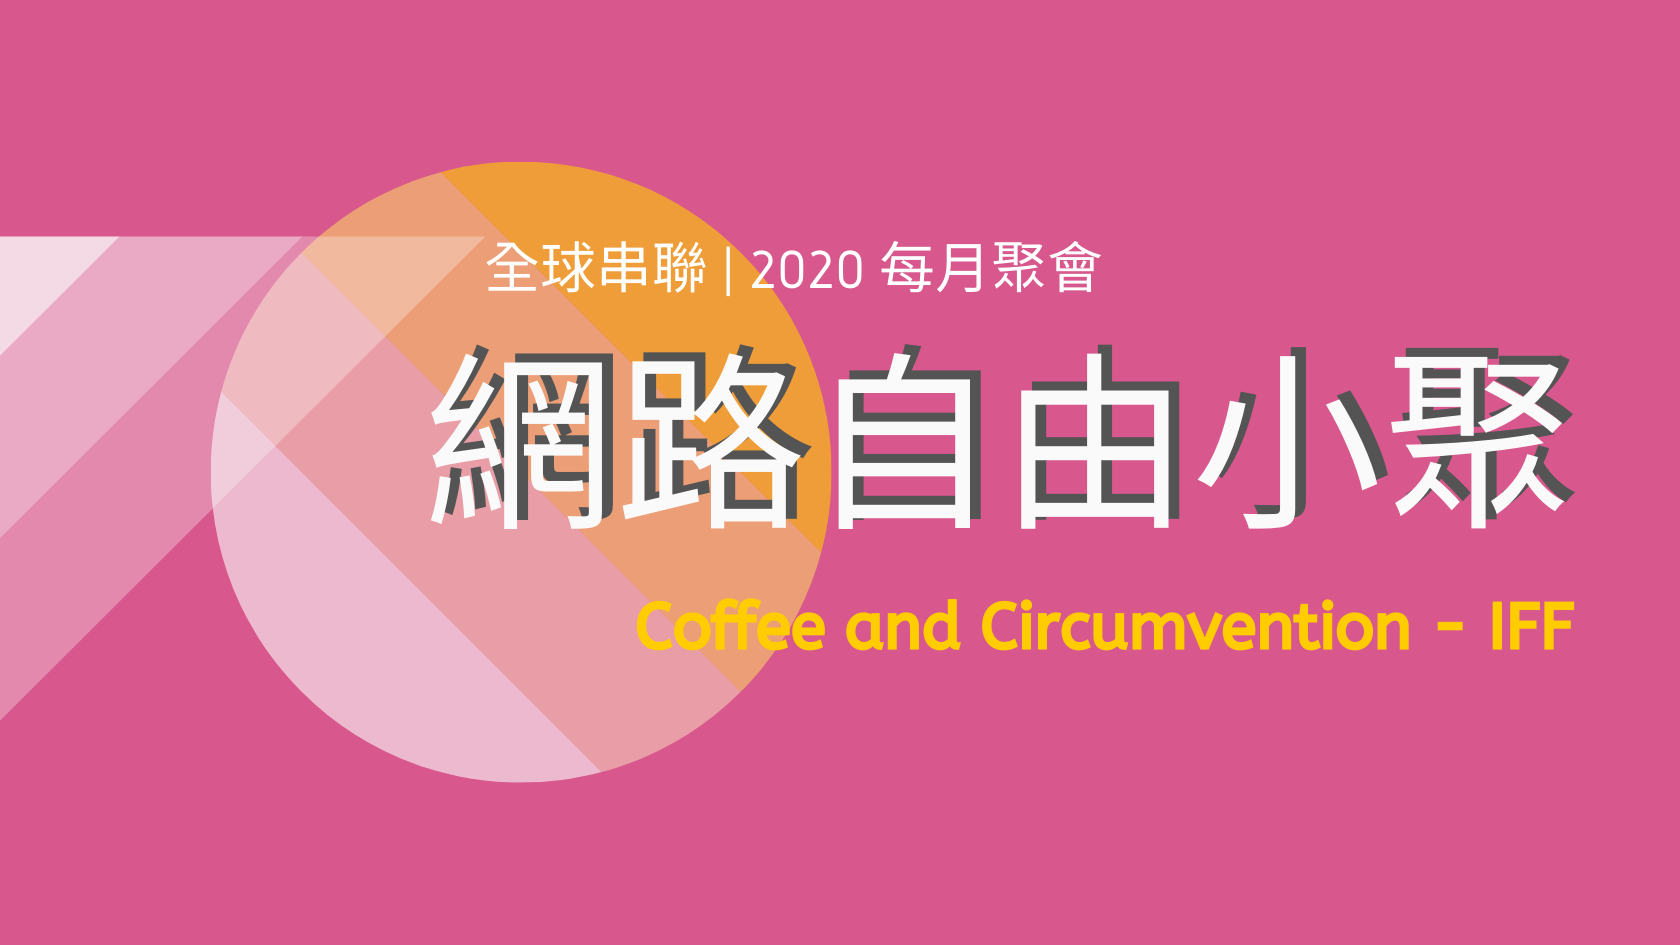 Event cover image for 2020 網路自由小聚 (每月第三個禮拜四)